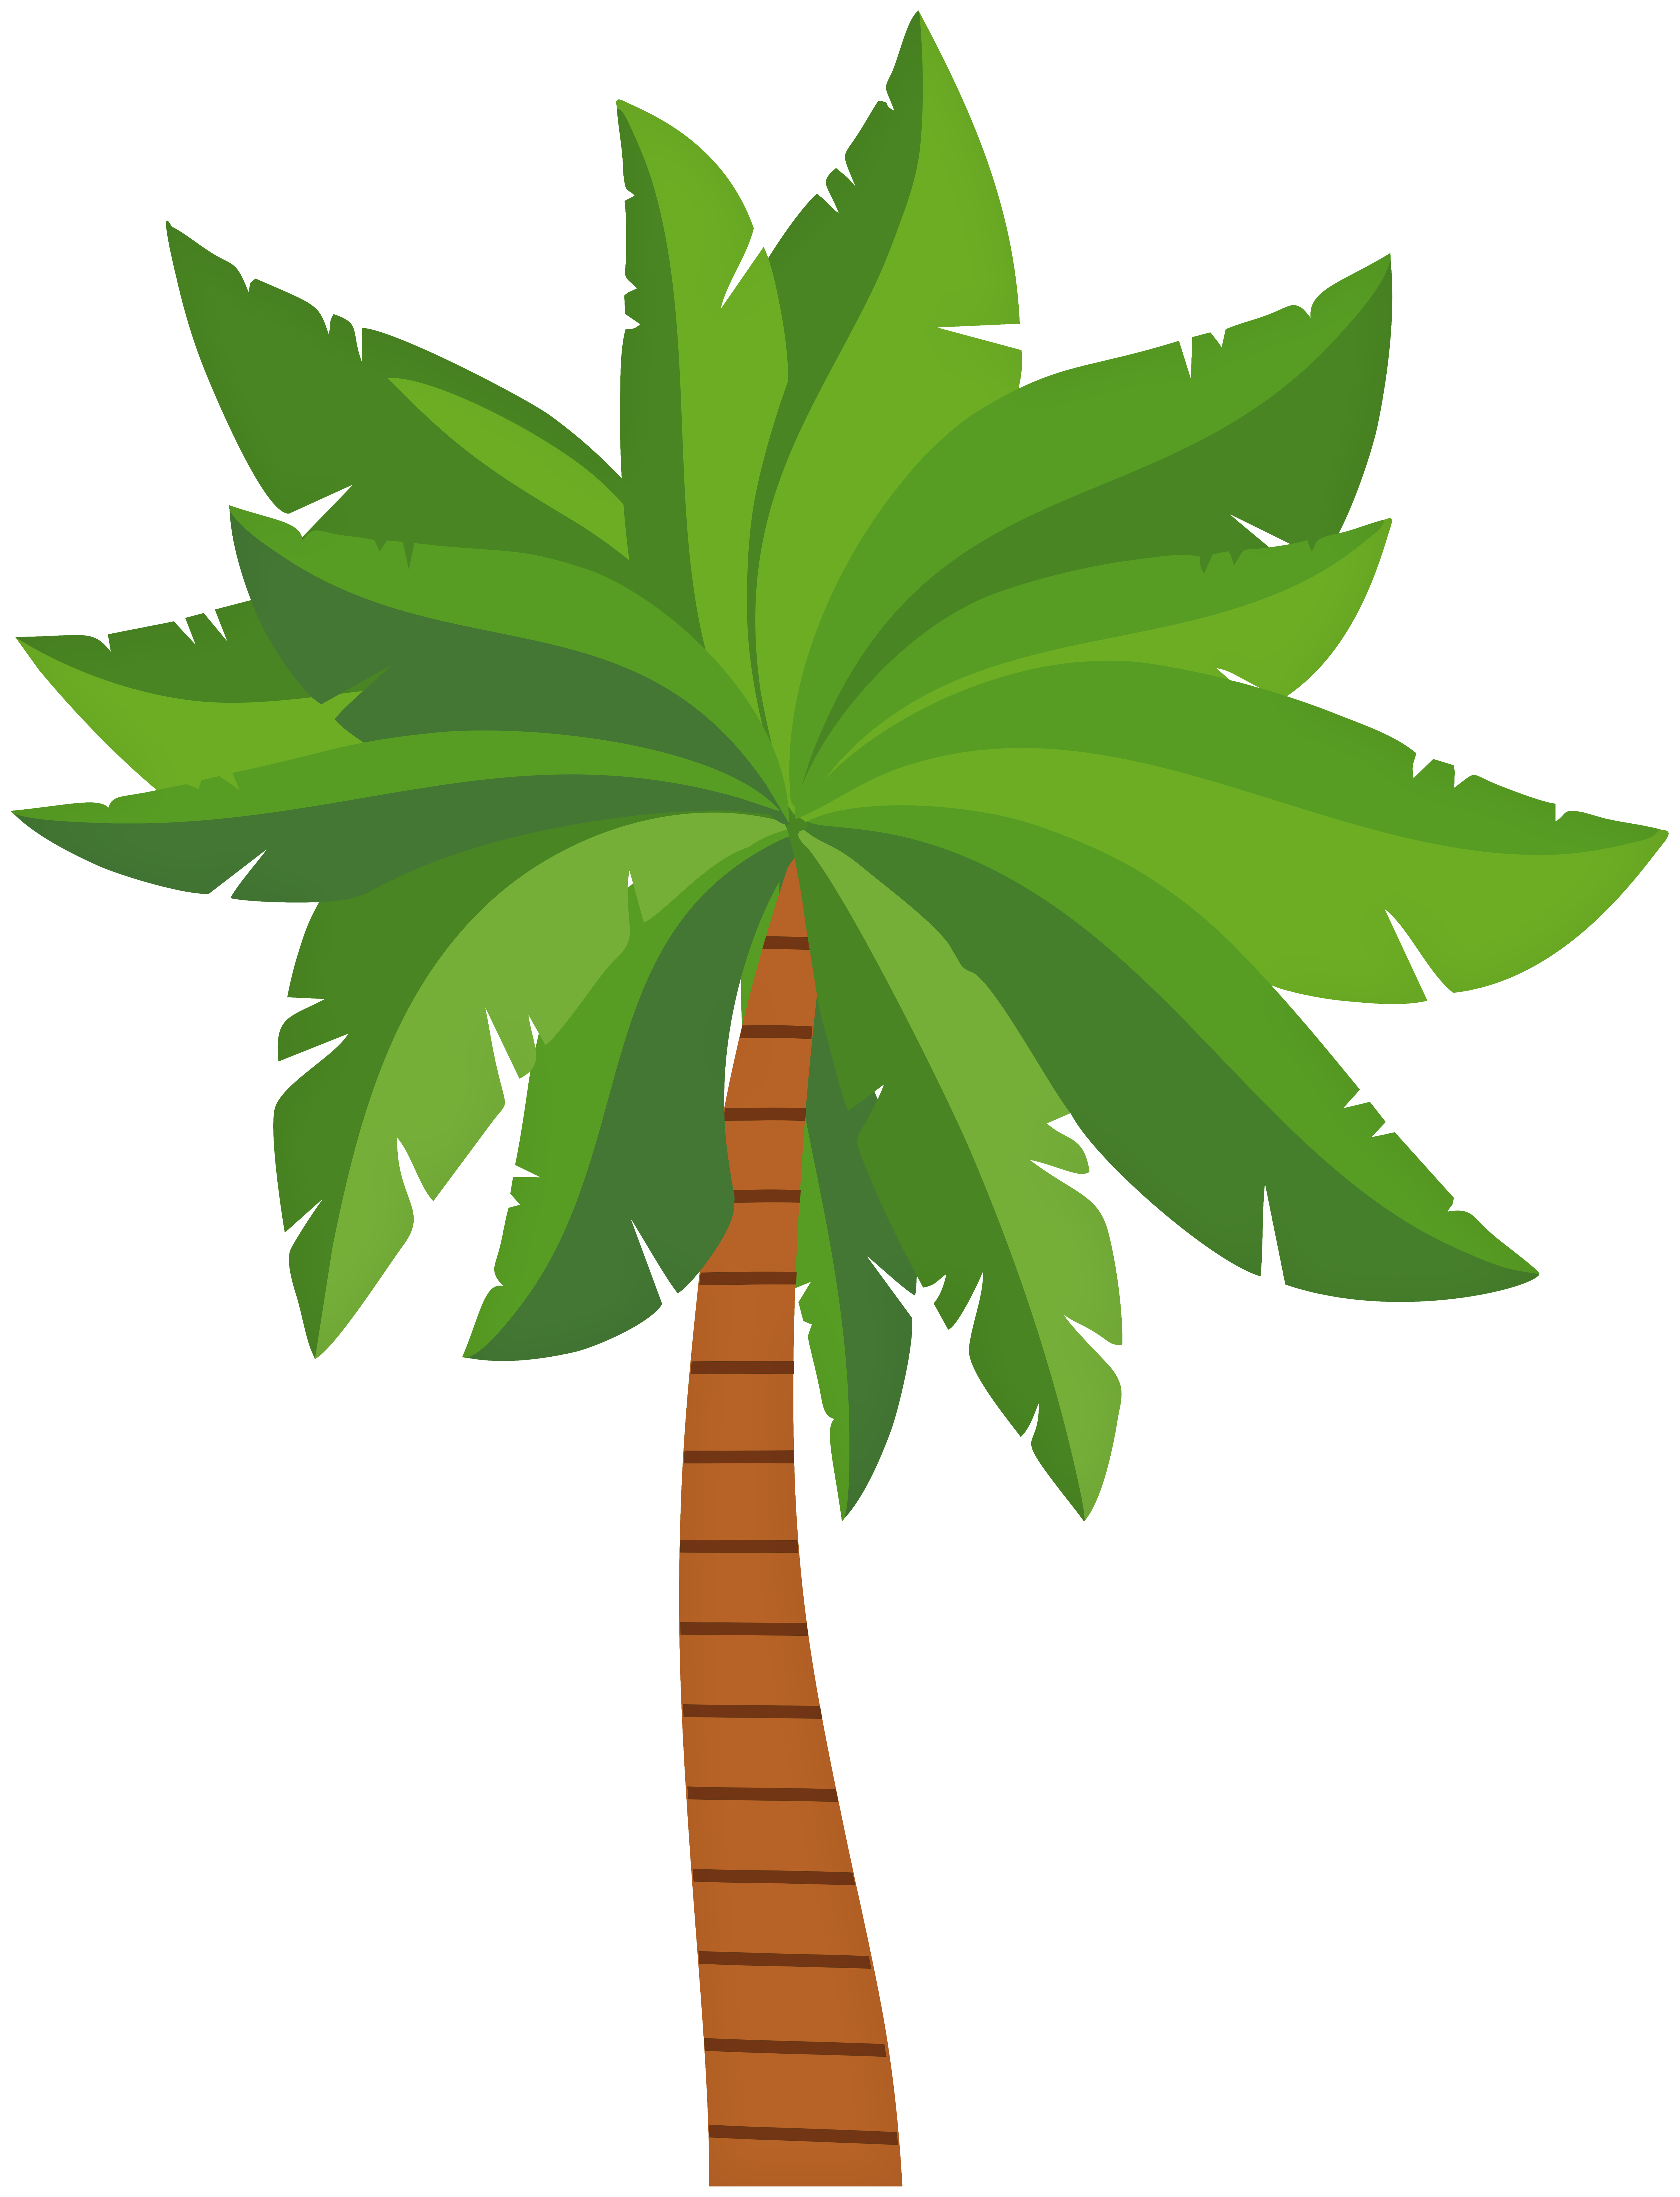 Palm trees Clip art Portable Network Graphics Image.